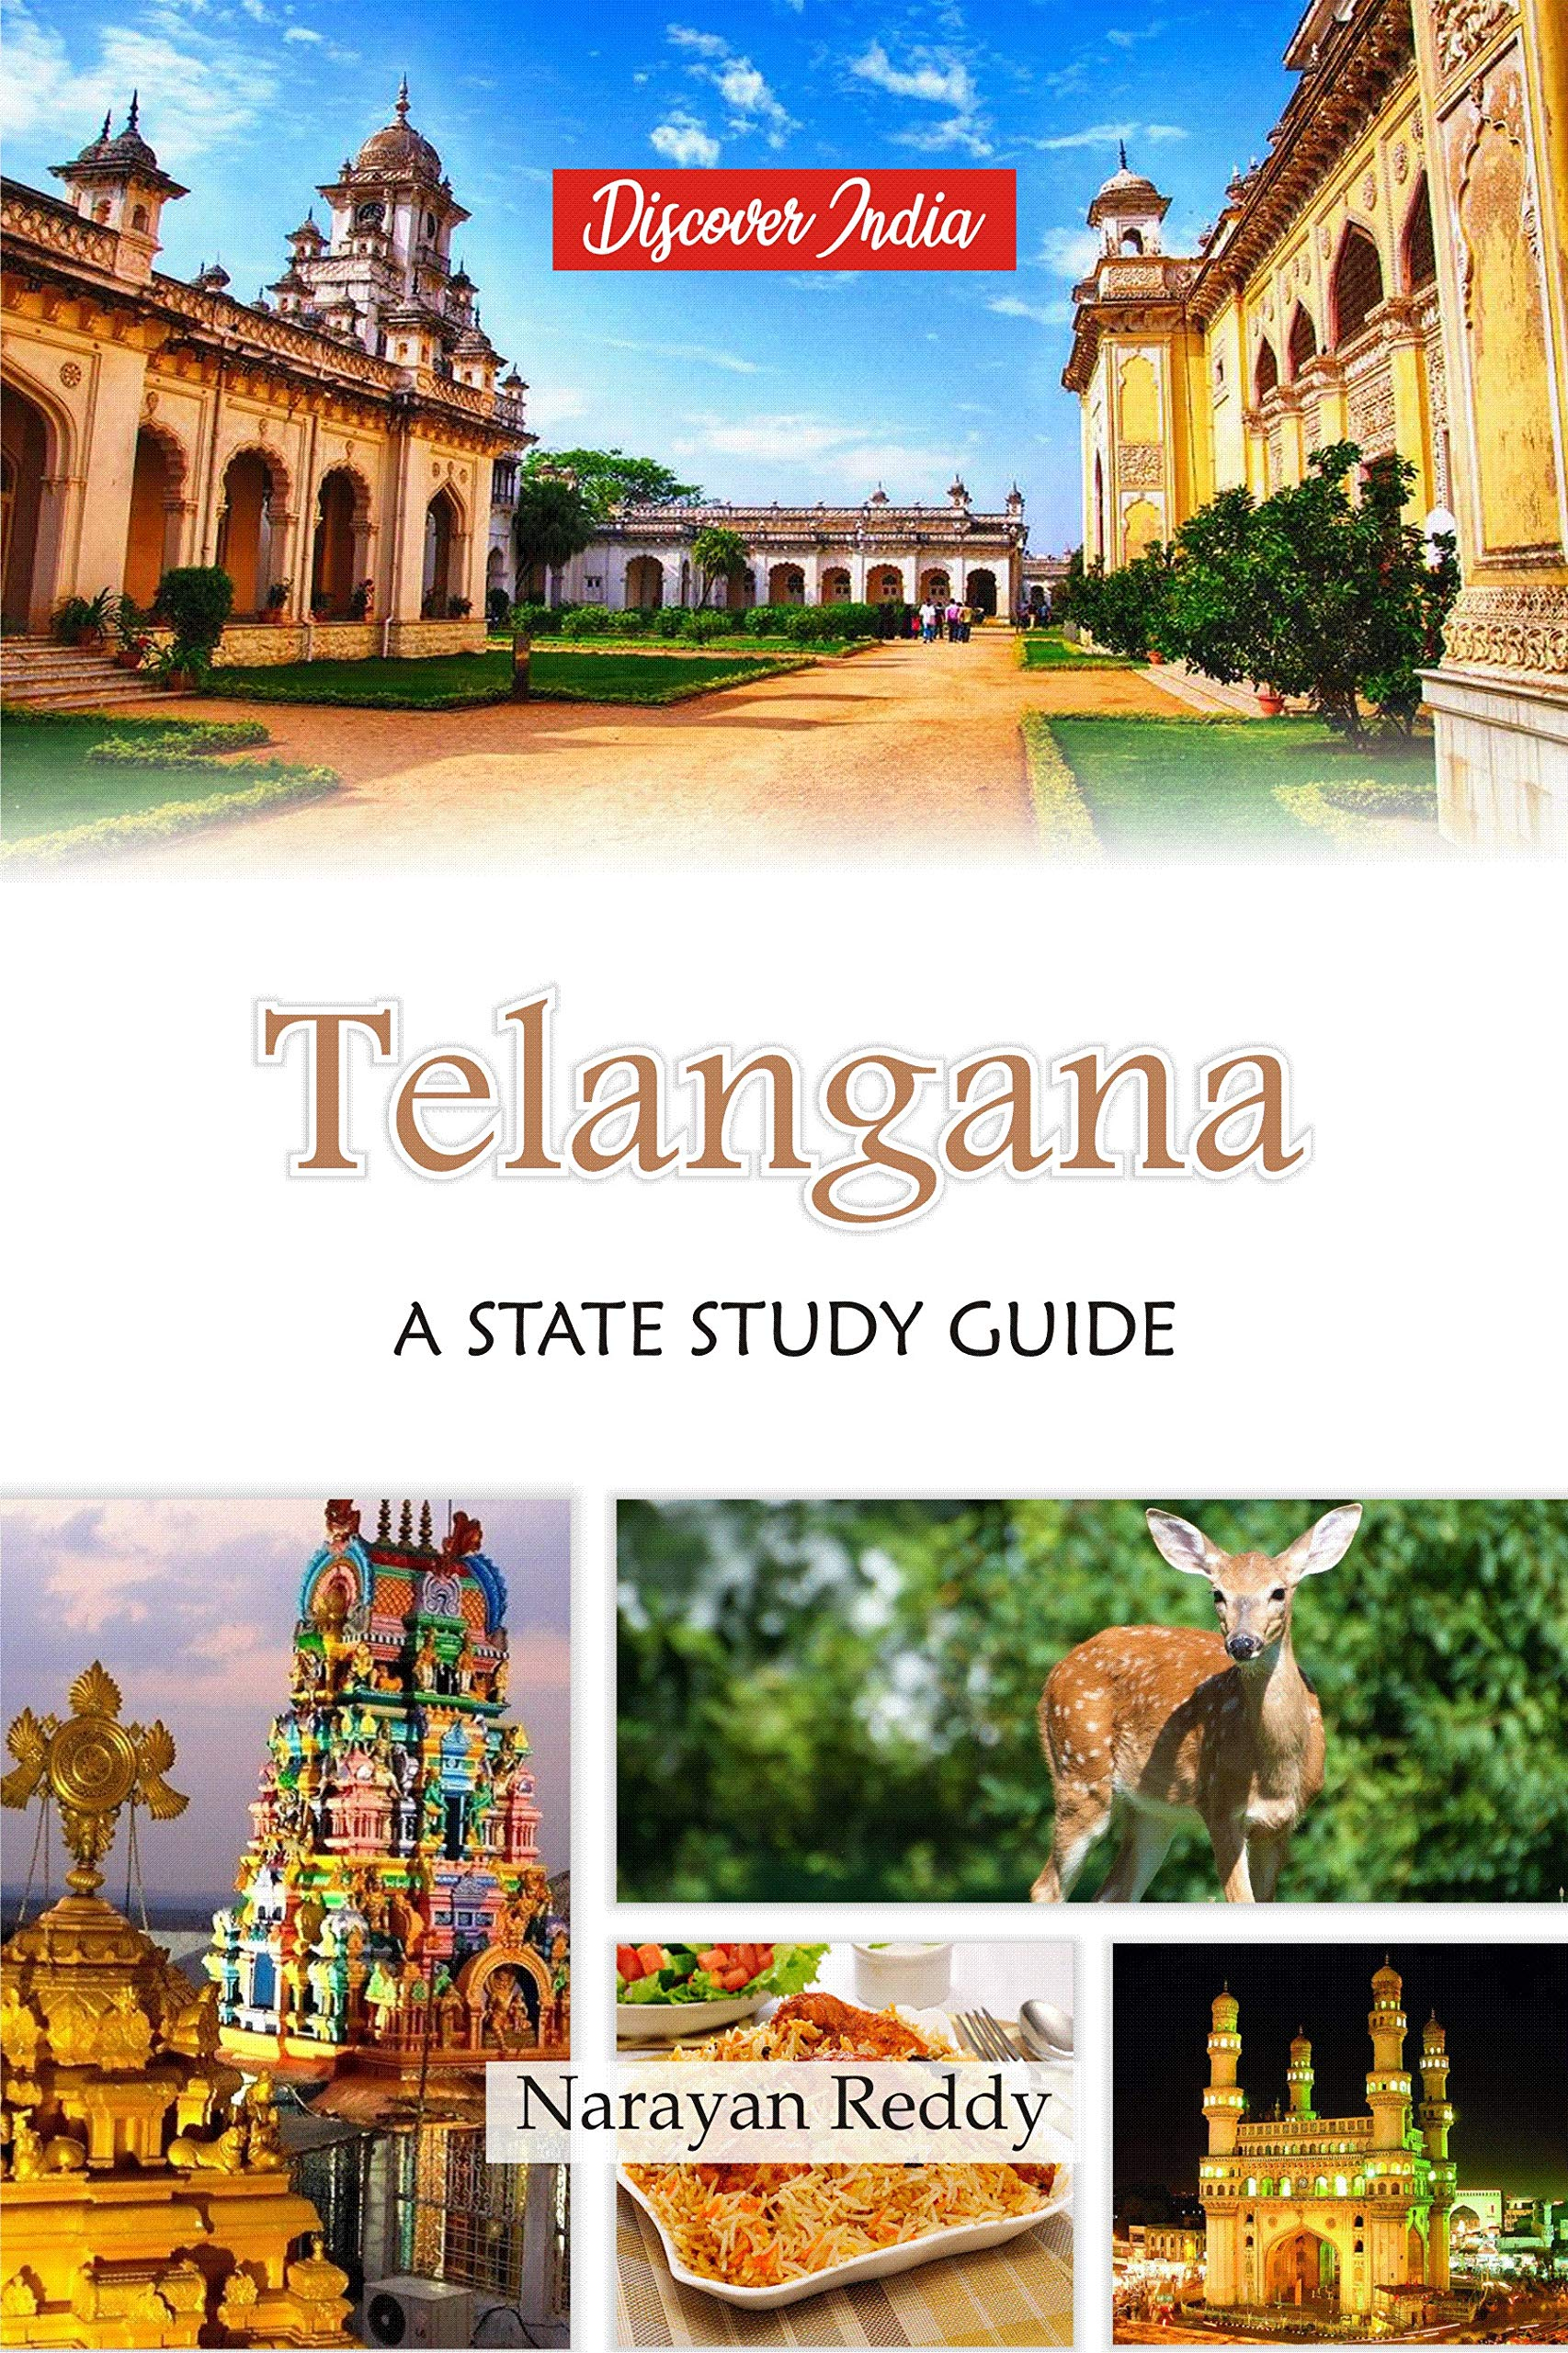 Buy Telangana A State Study Guide Book Online At Low Prices In India Telangana A State Study Guide Reviews Ratings Amazon In